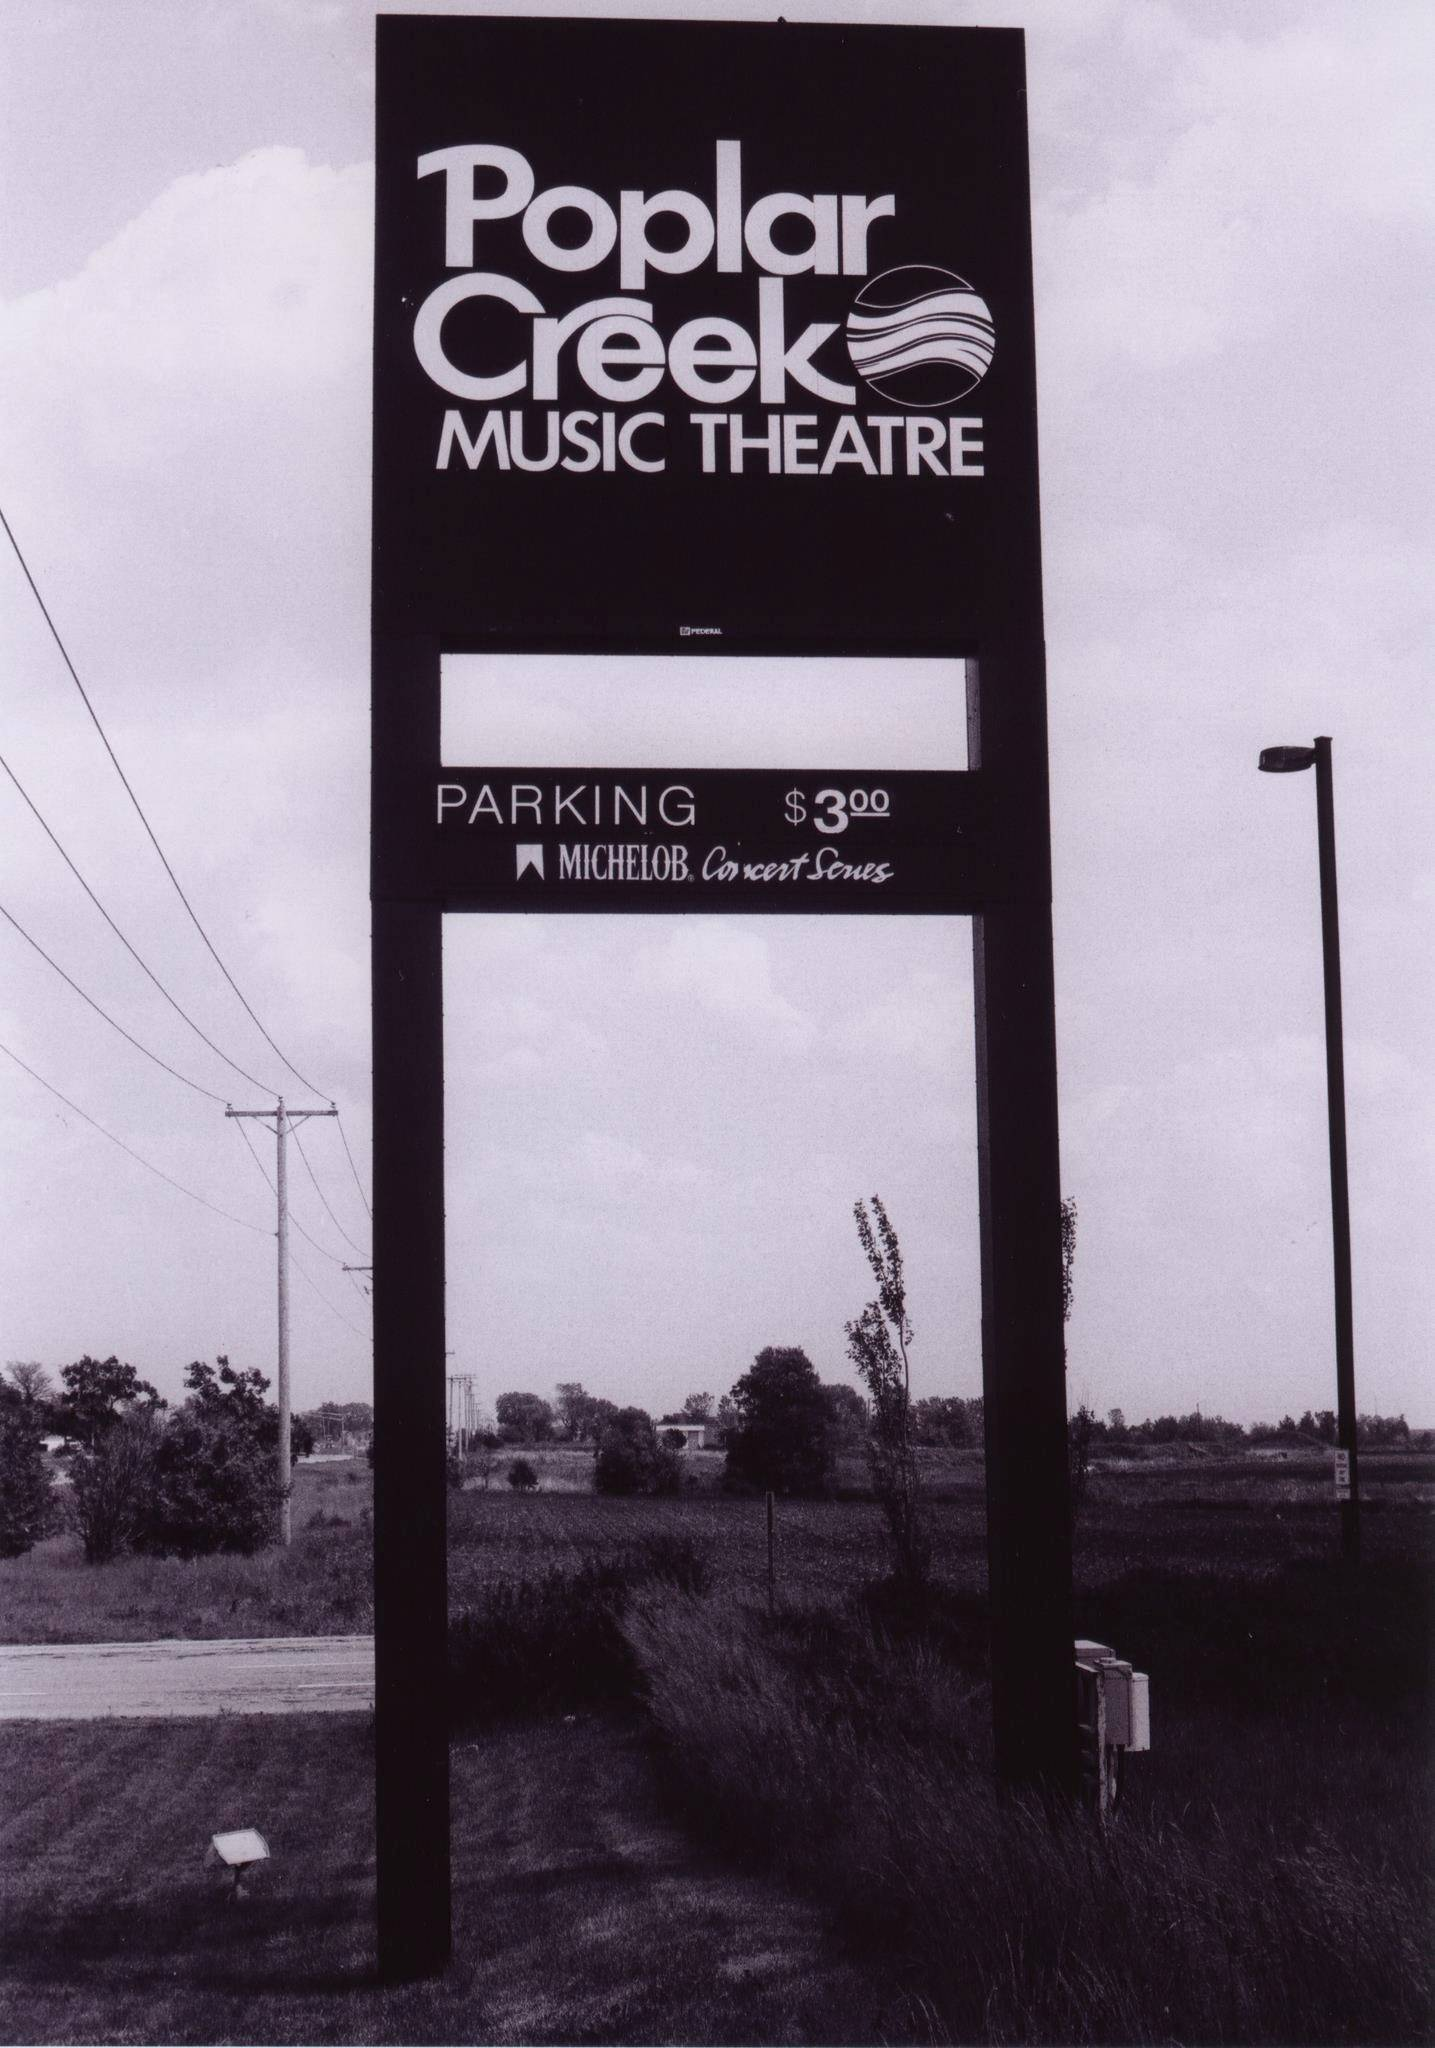 A sign, and notice of the $3 parking fee, welcomes people to the old Poplar Creek Music Theatre in Hoffman Estates.